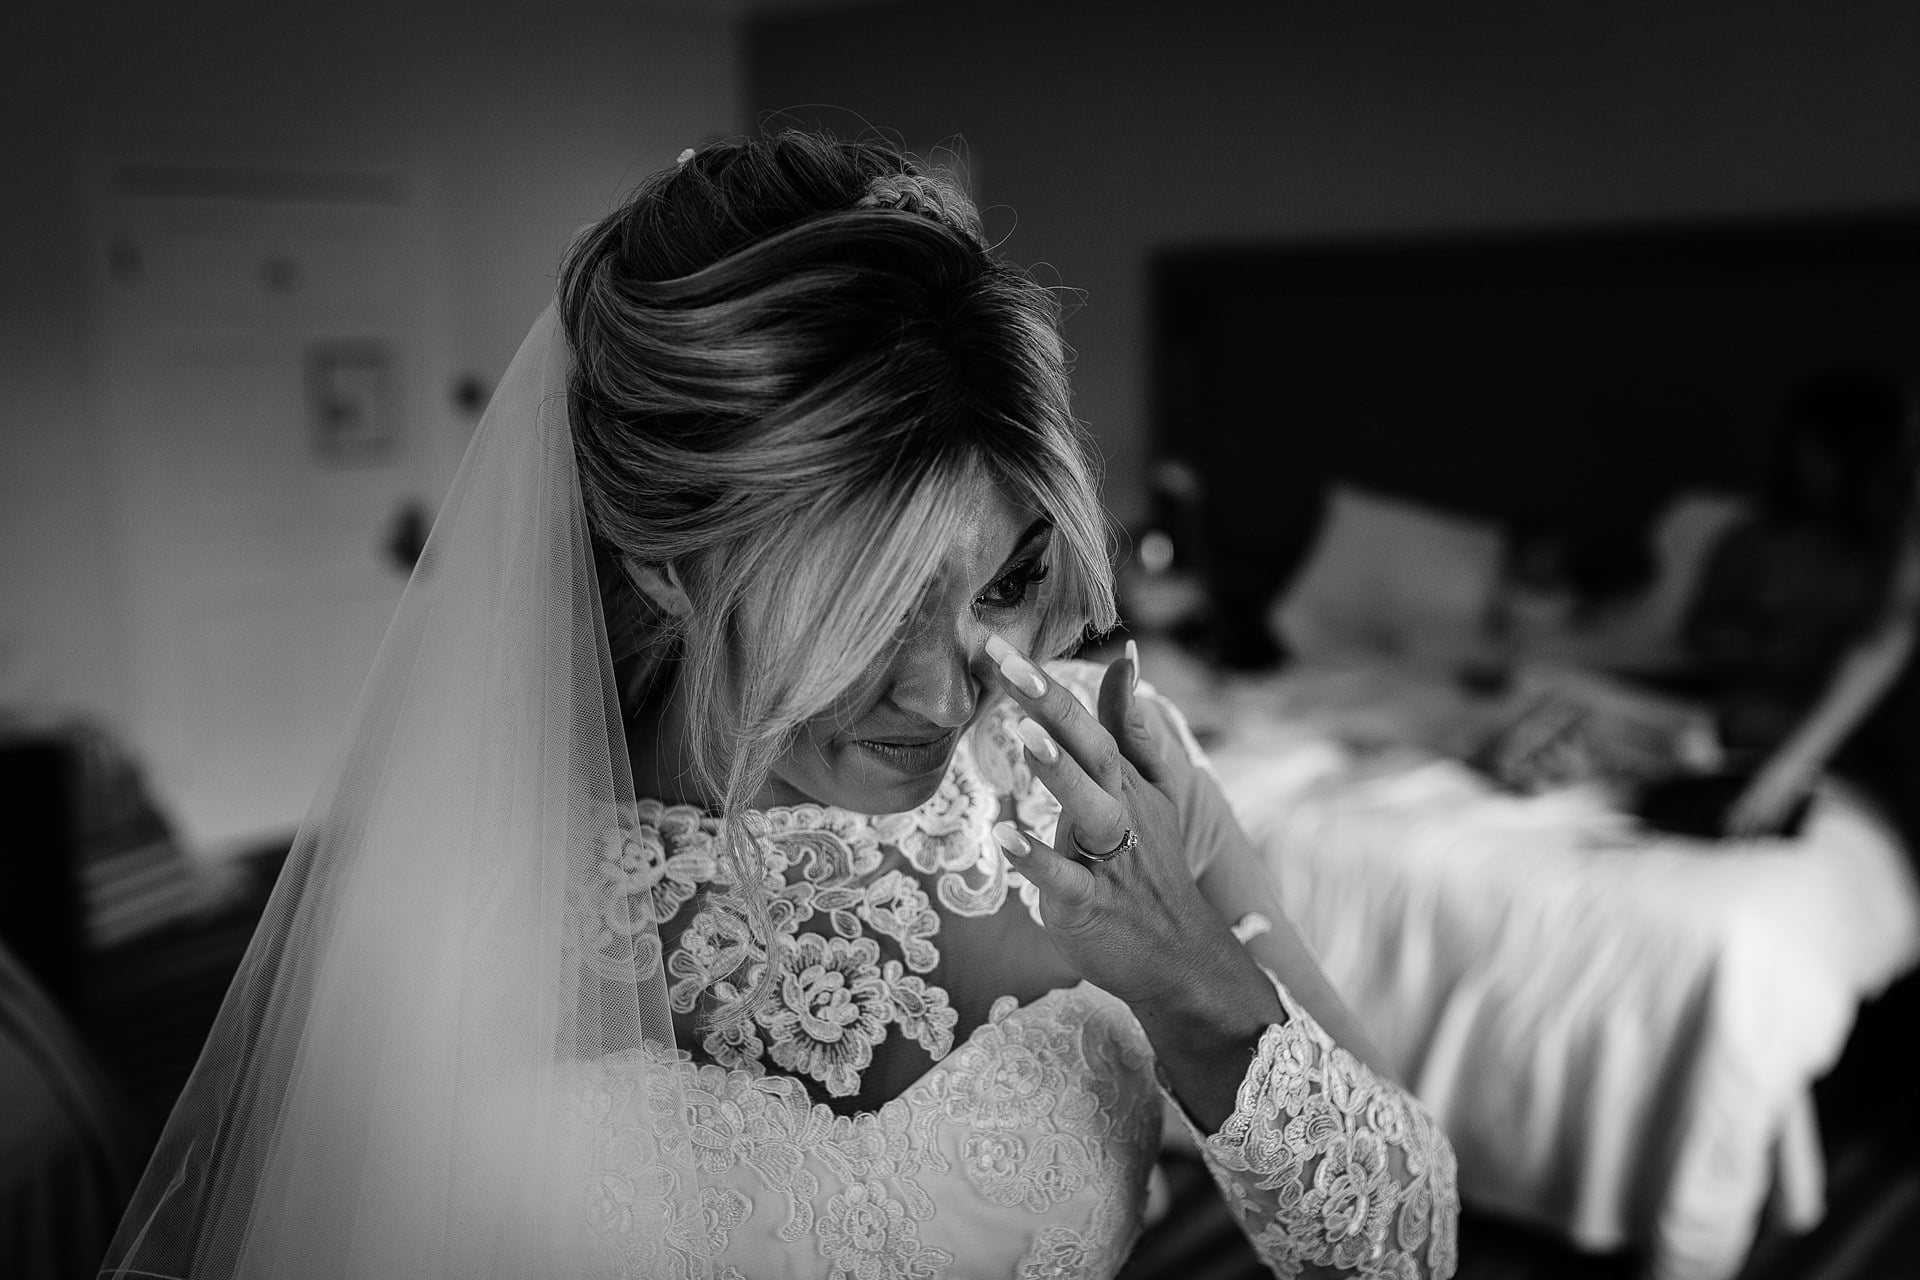 A tender moment as a bride's emotions spill over